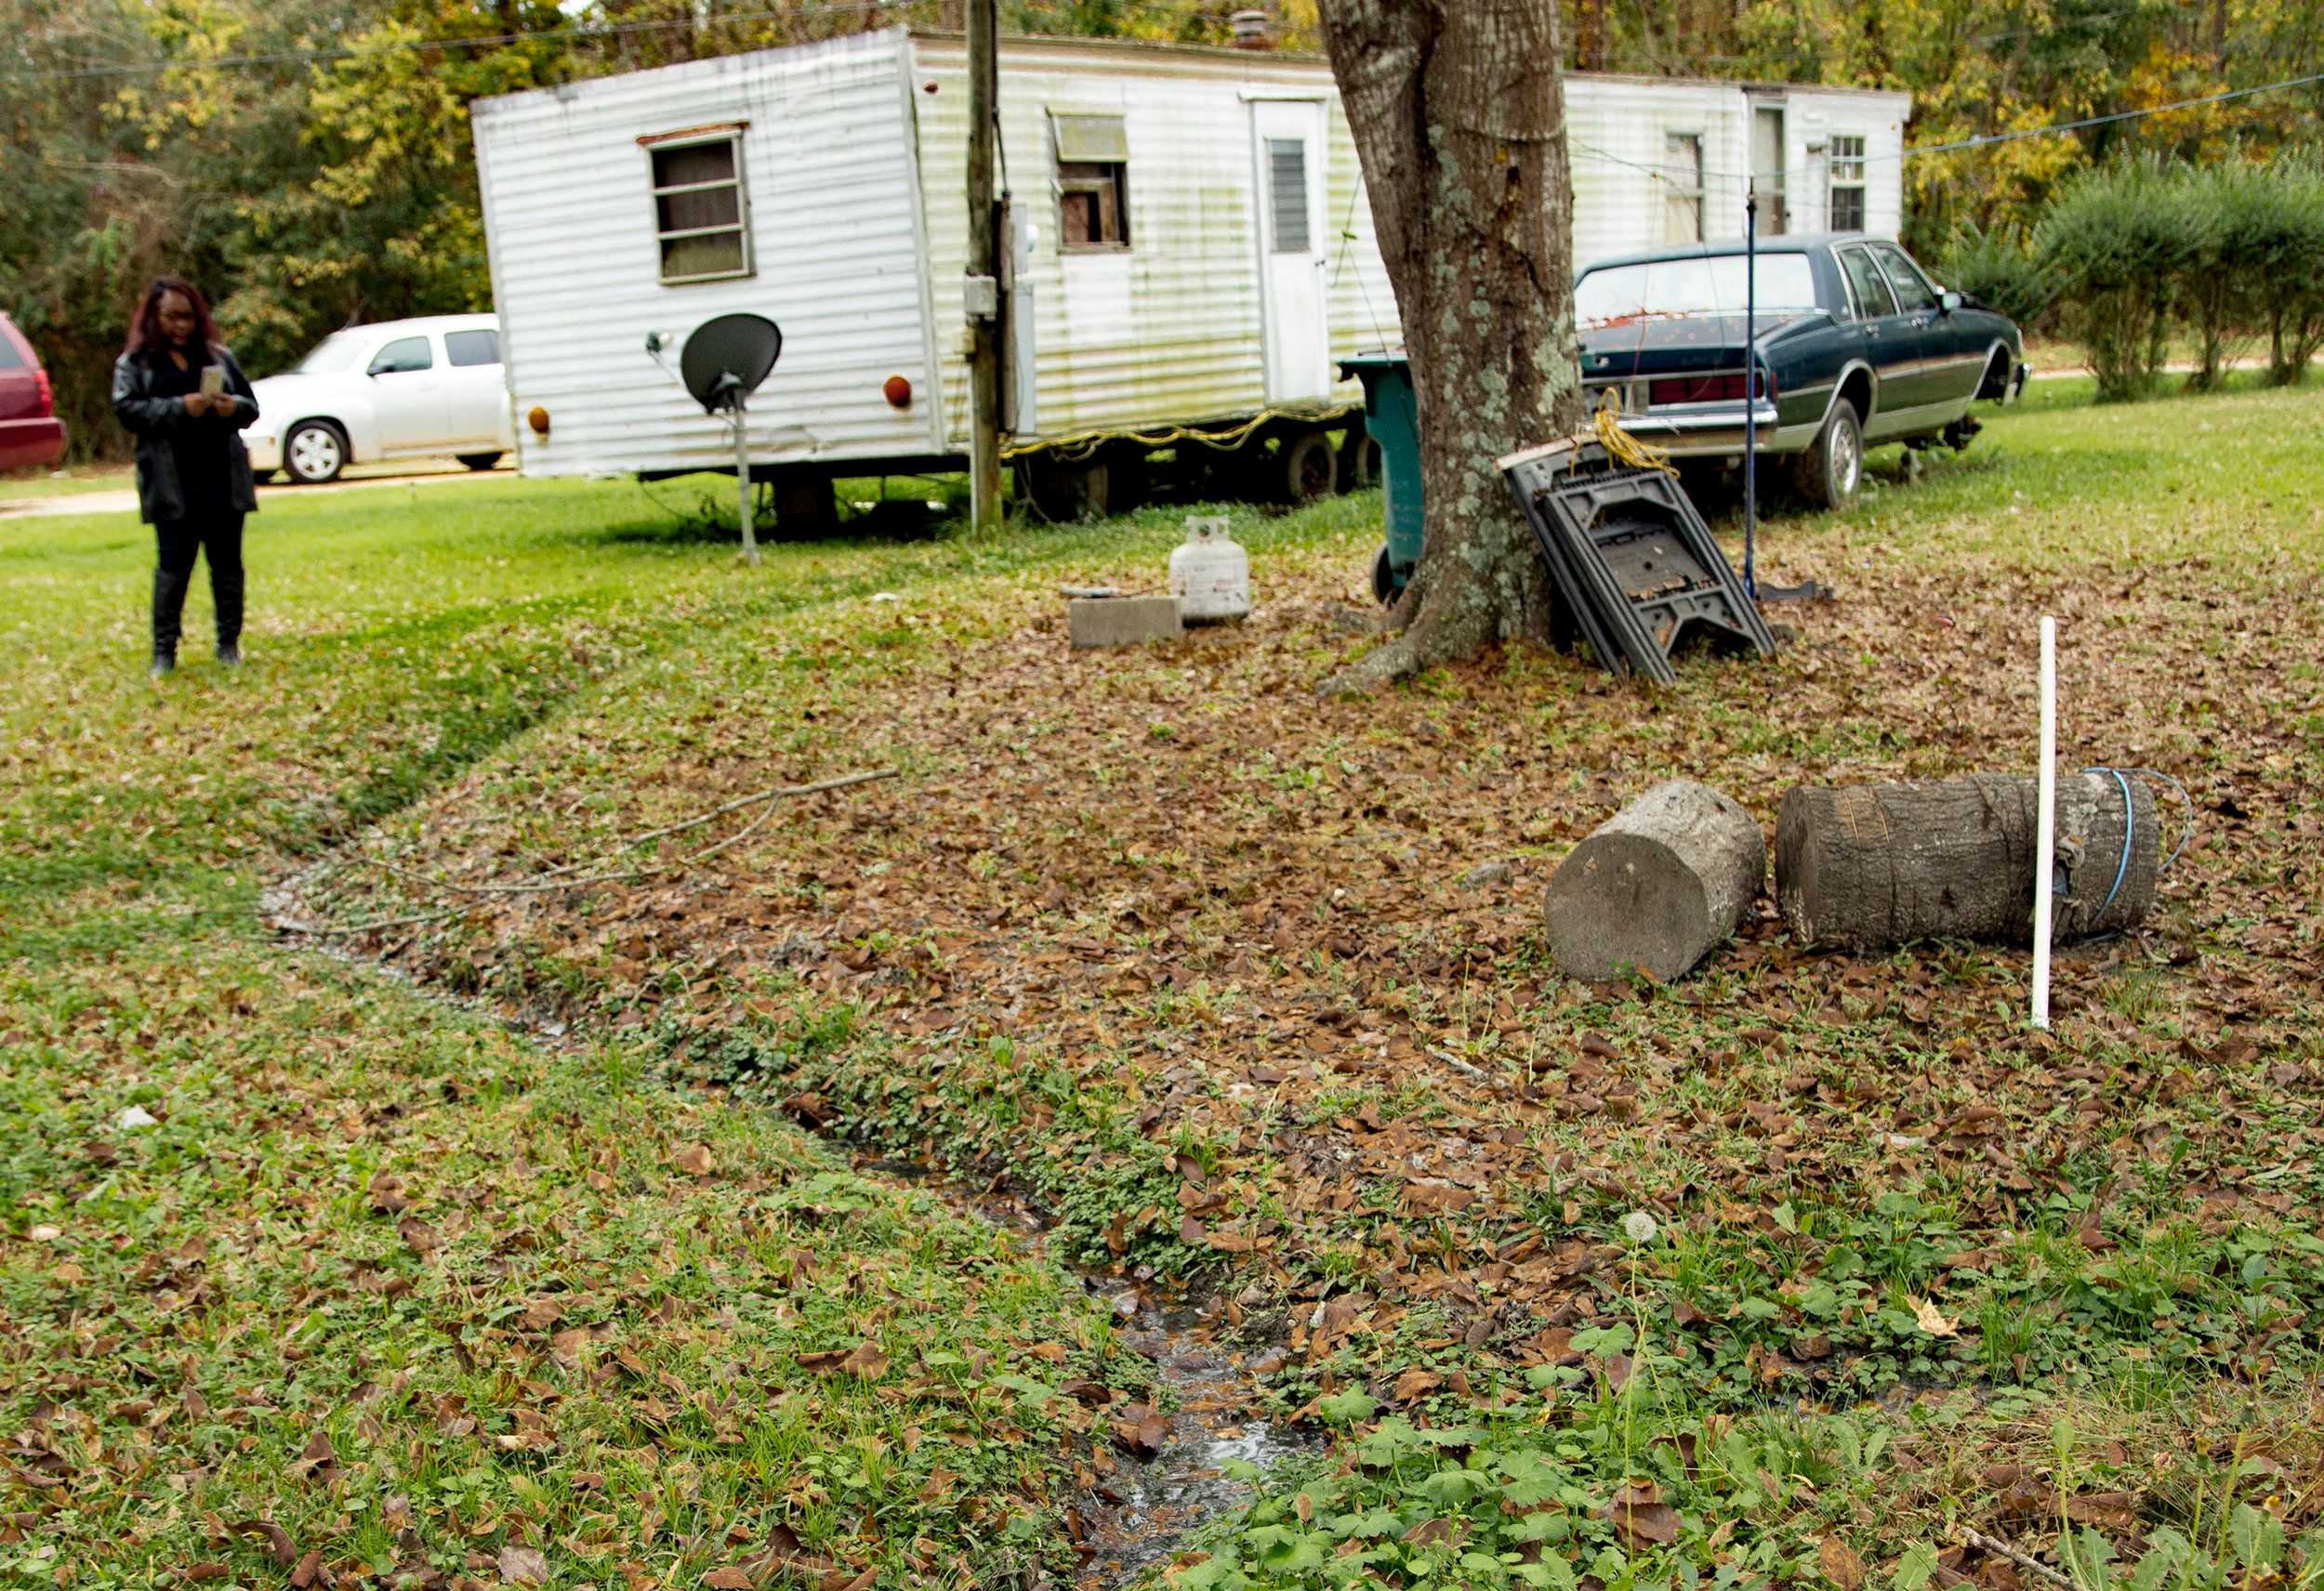 An open sewer carries waste from a mobile home toward the woods at the edge of the property.